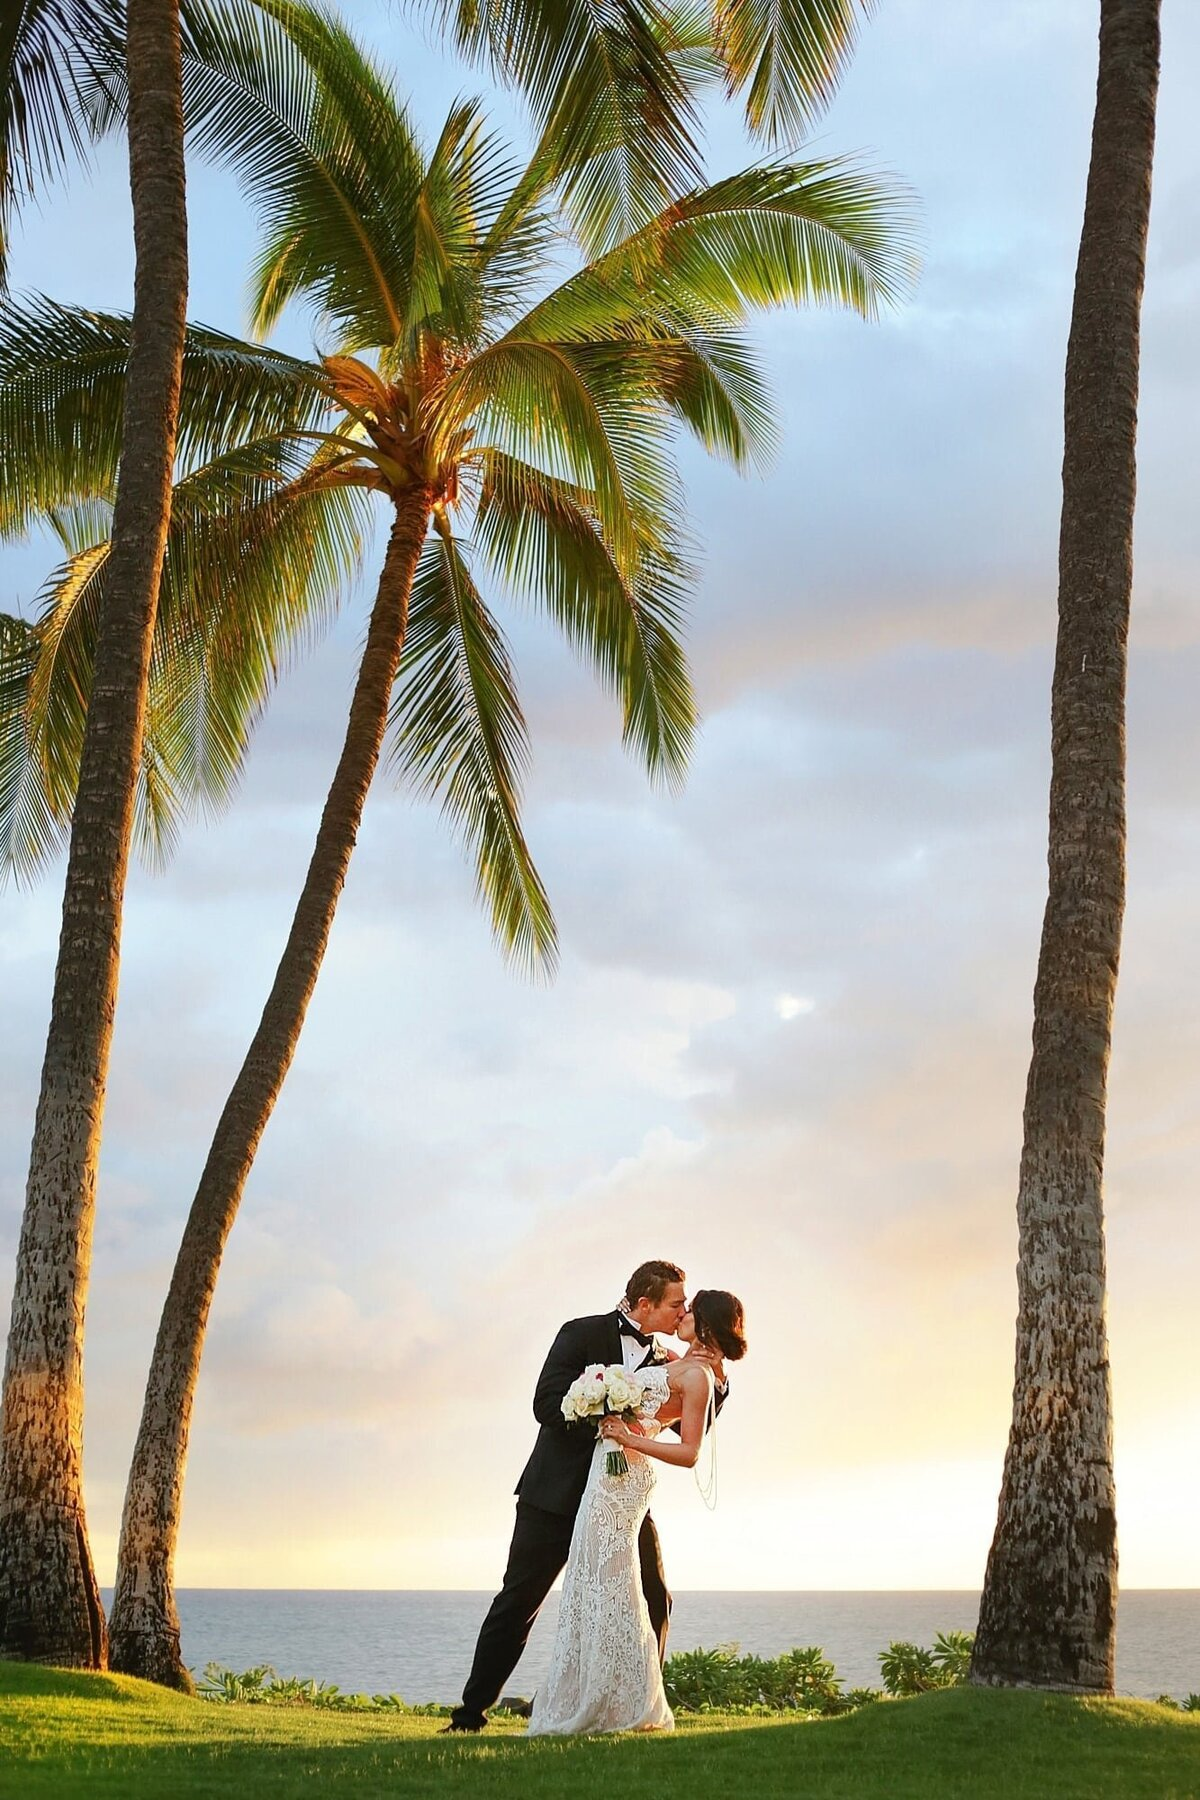 Bride and groom kiss after their wedding at Andaz Maui Resort in Wailea